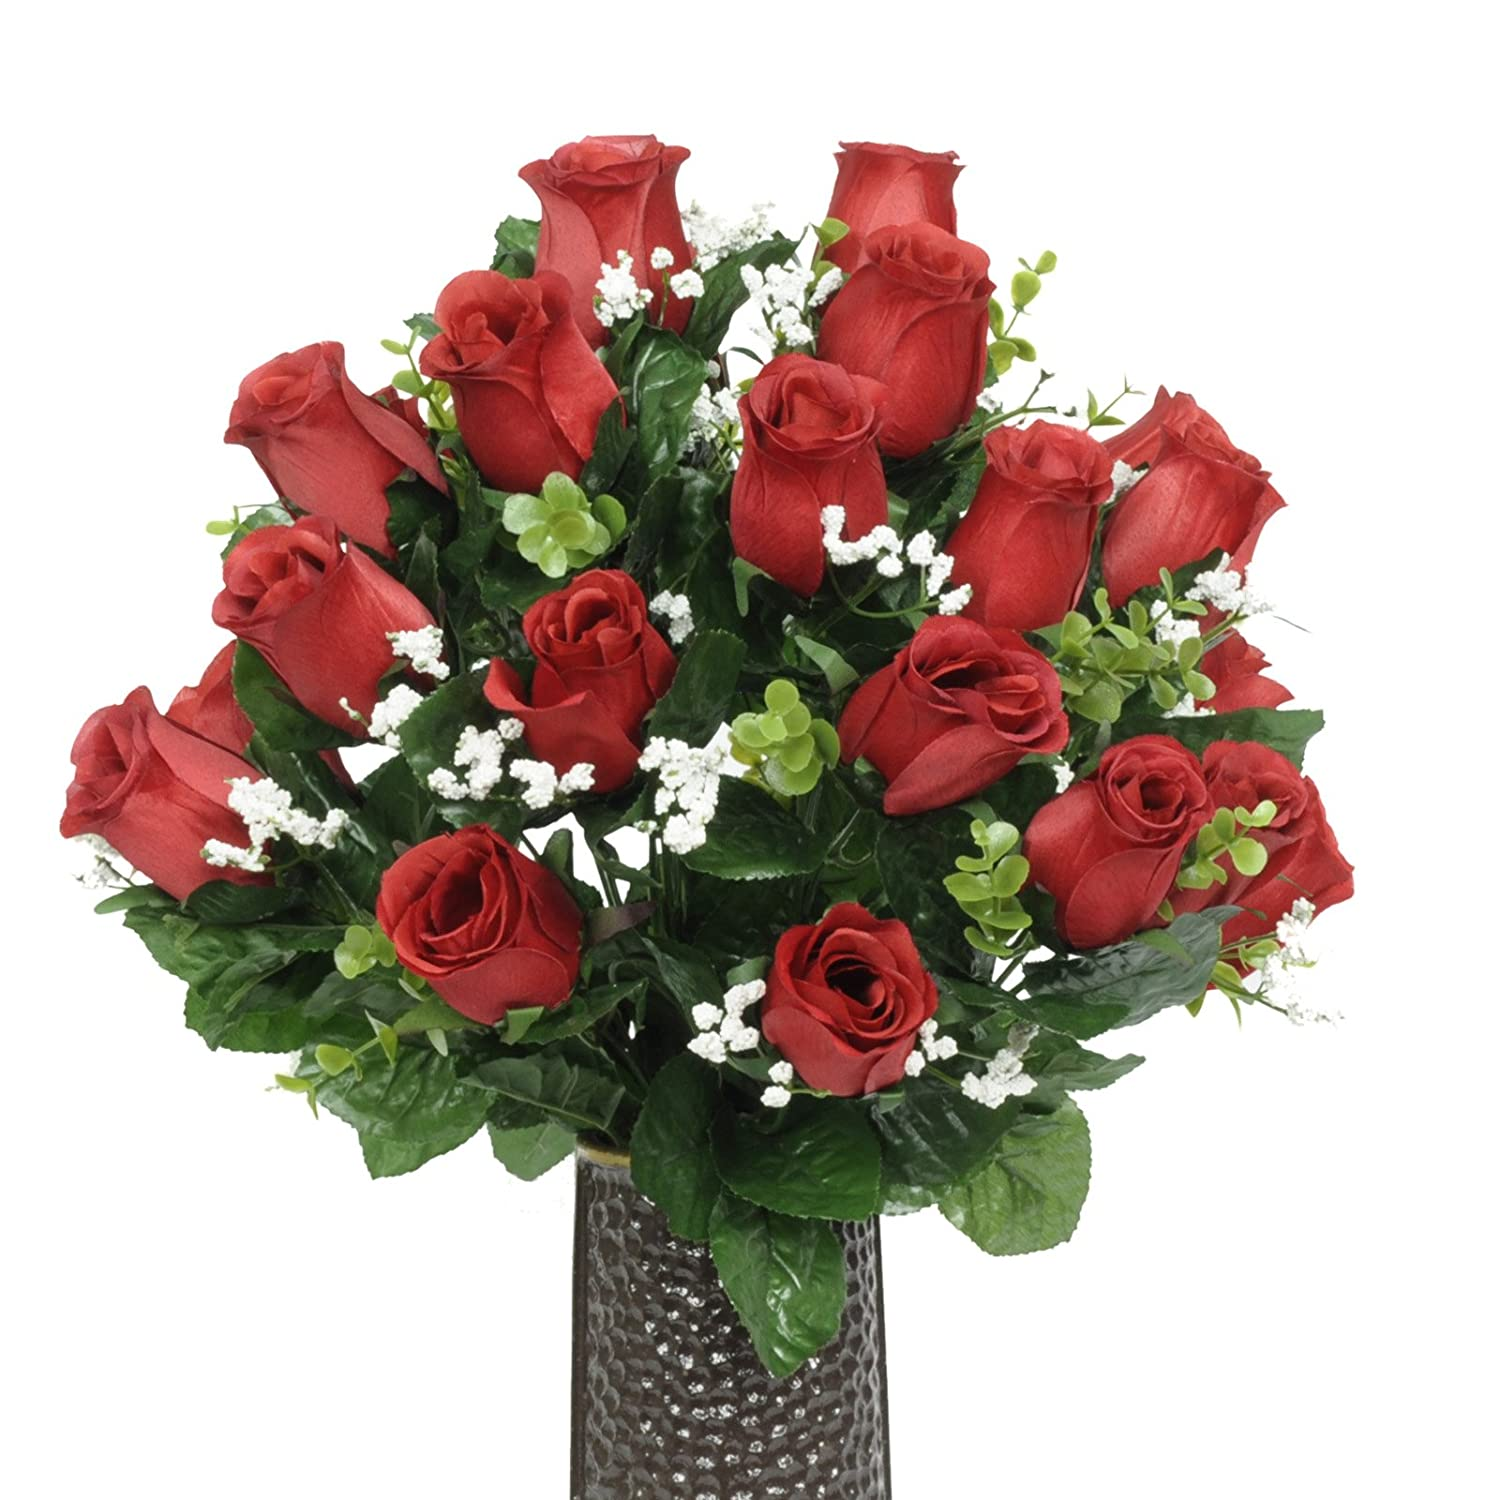 Shop amazon artificial flowers red rose silk flower bouquet with stay in the vase design flower izmirmasajfo